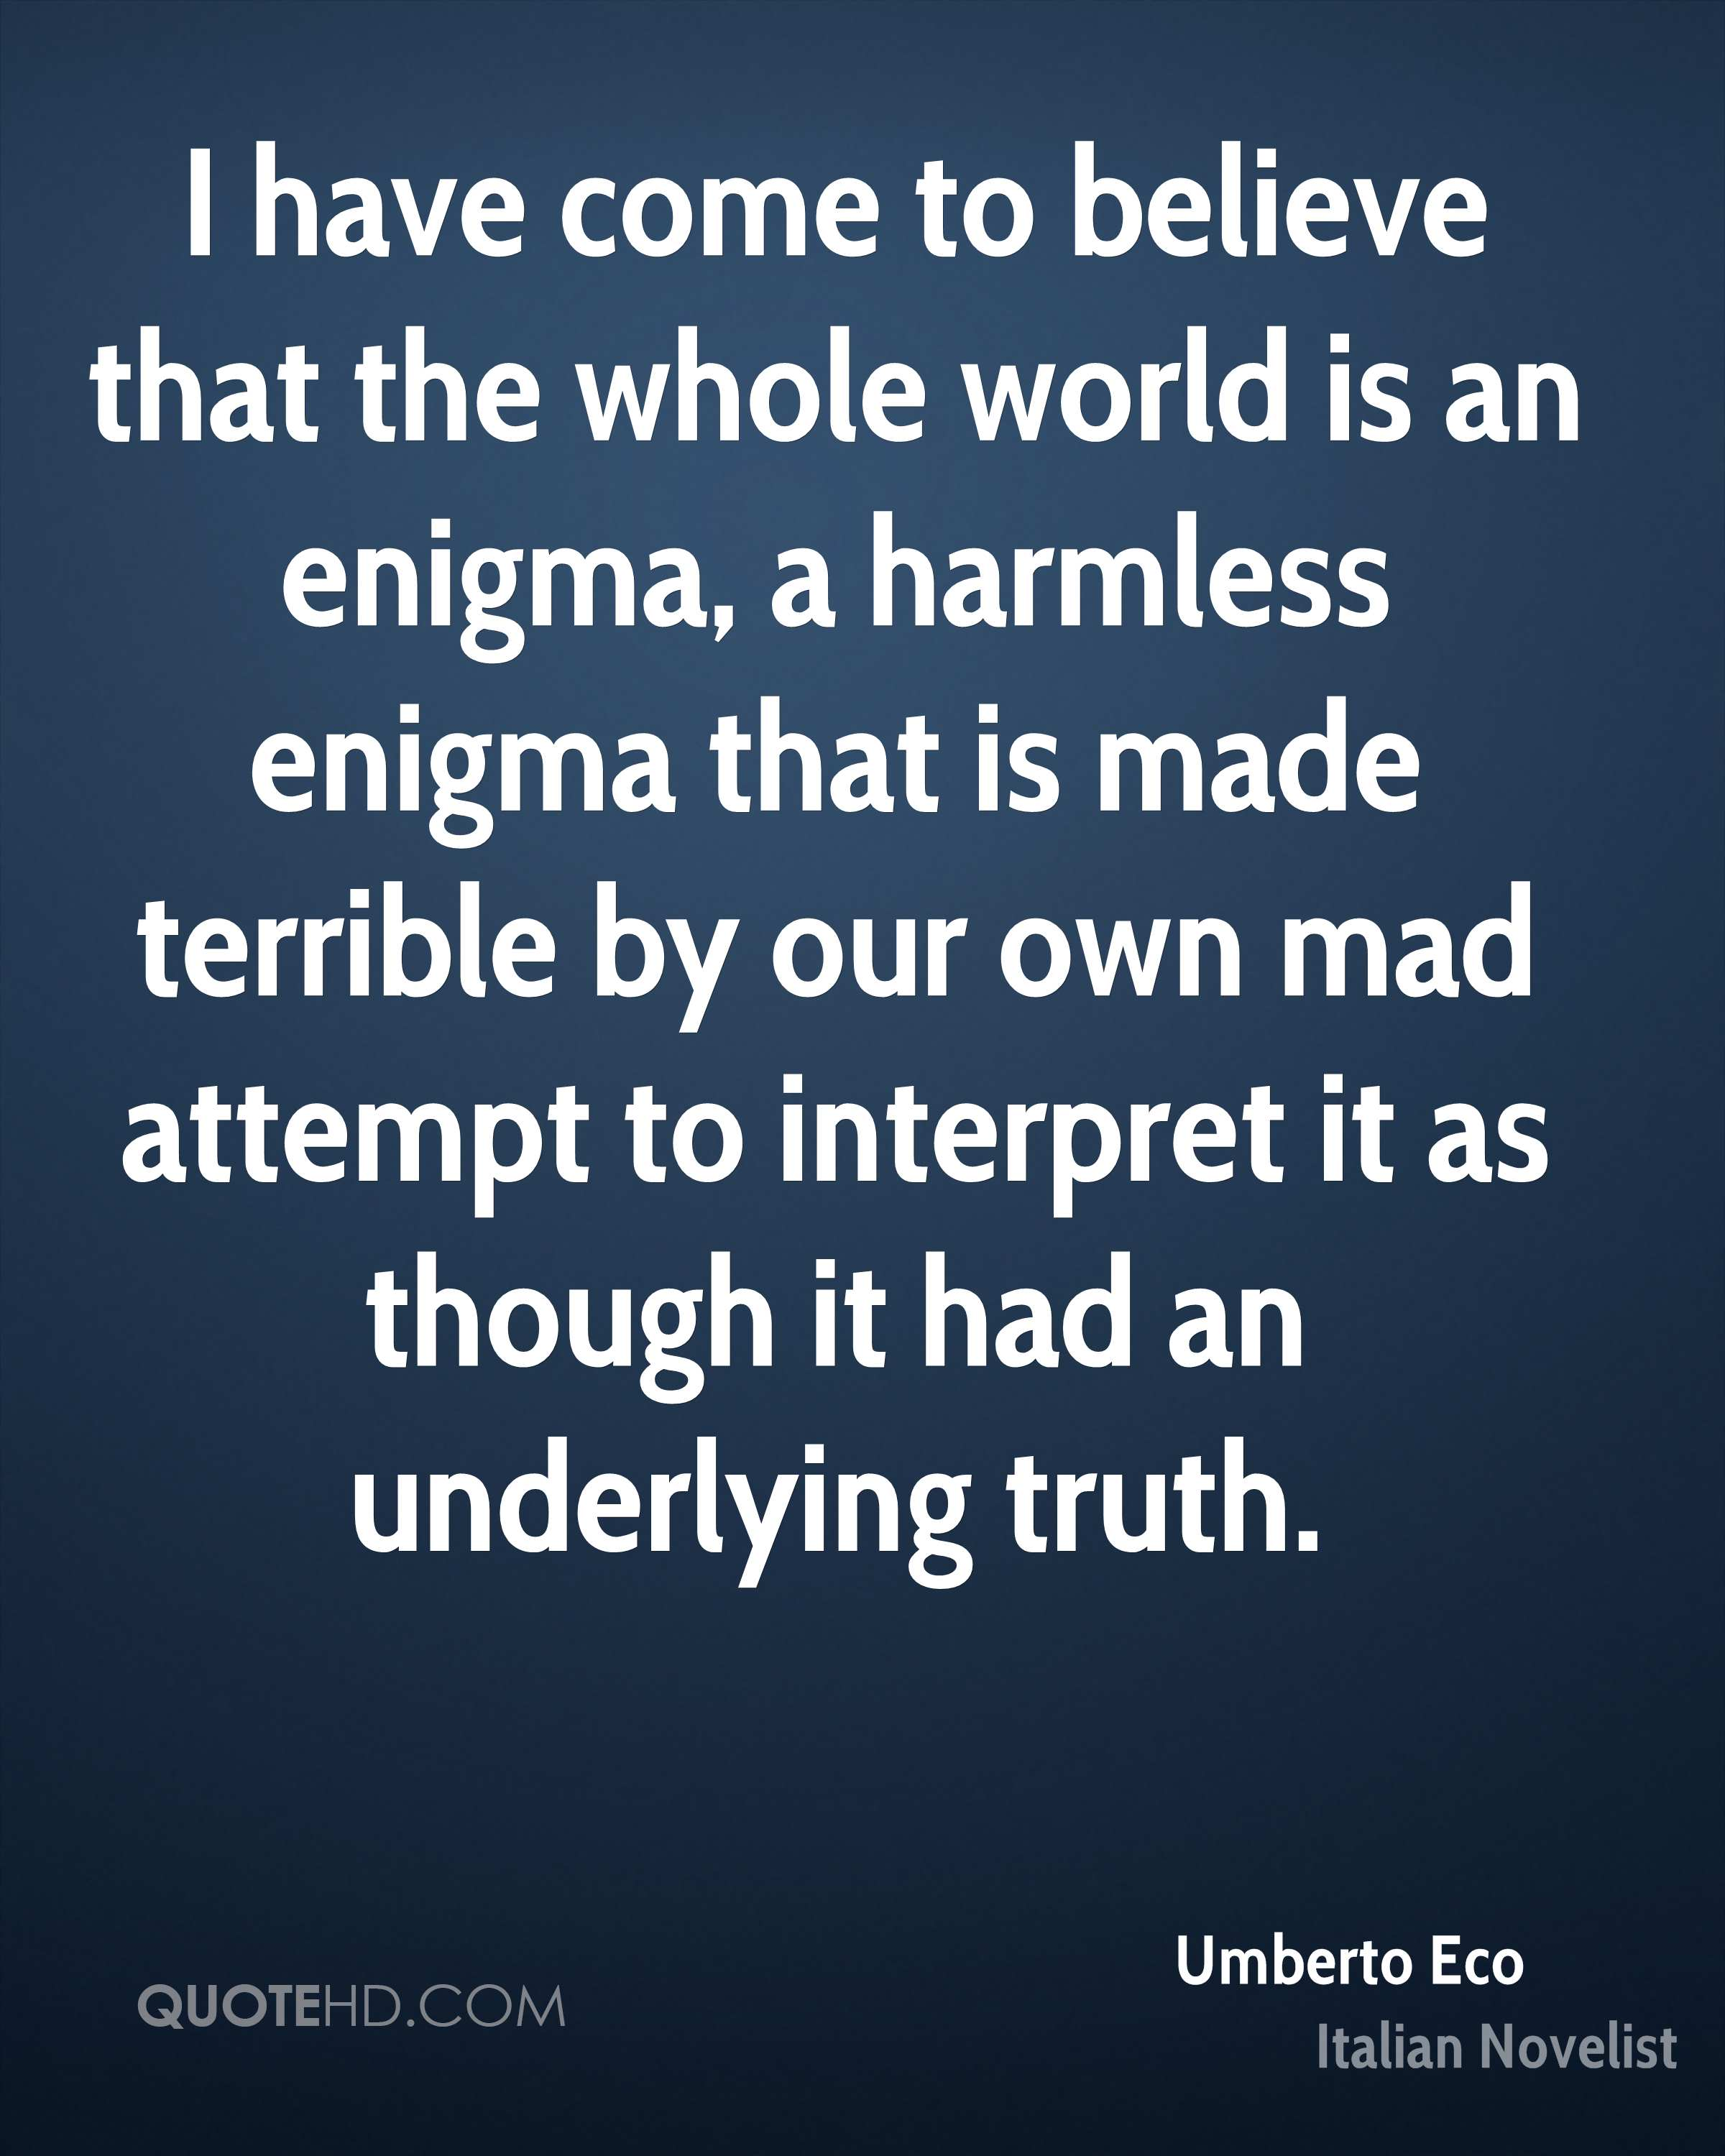 I have come to believe that the whole world is an enigma, a harmless enigma that is made terrible by our own mad attempt to interpret it as though it had an underlying truth.